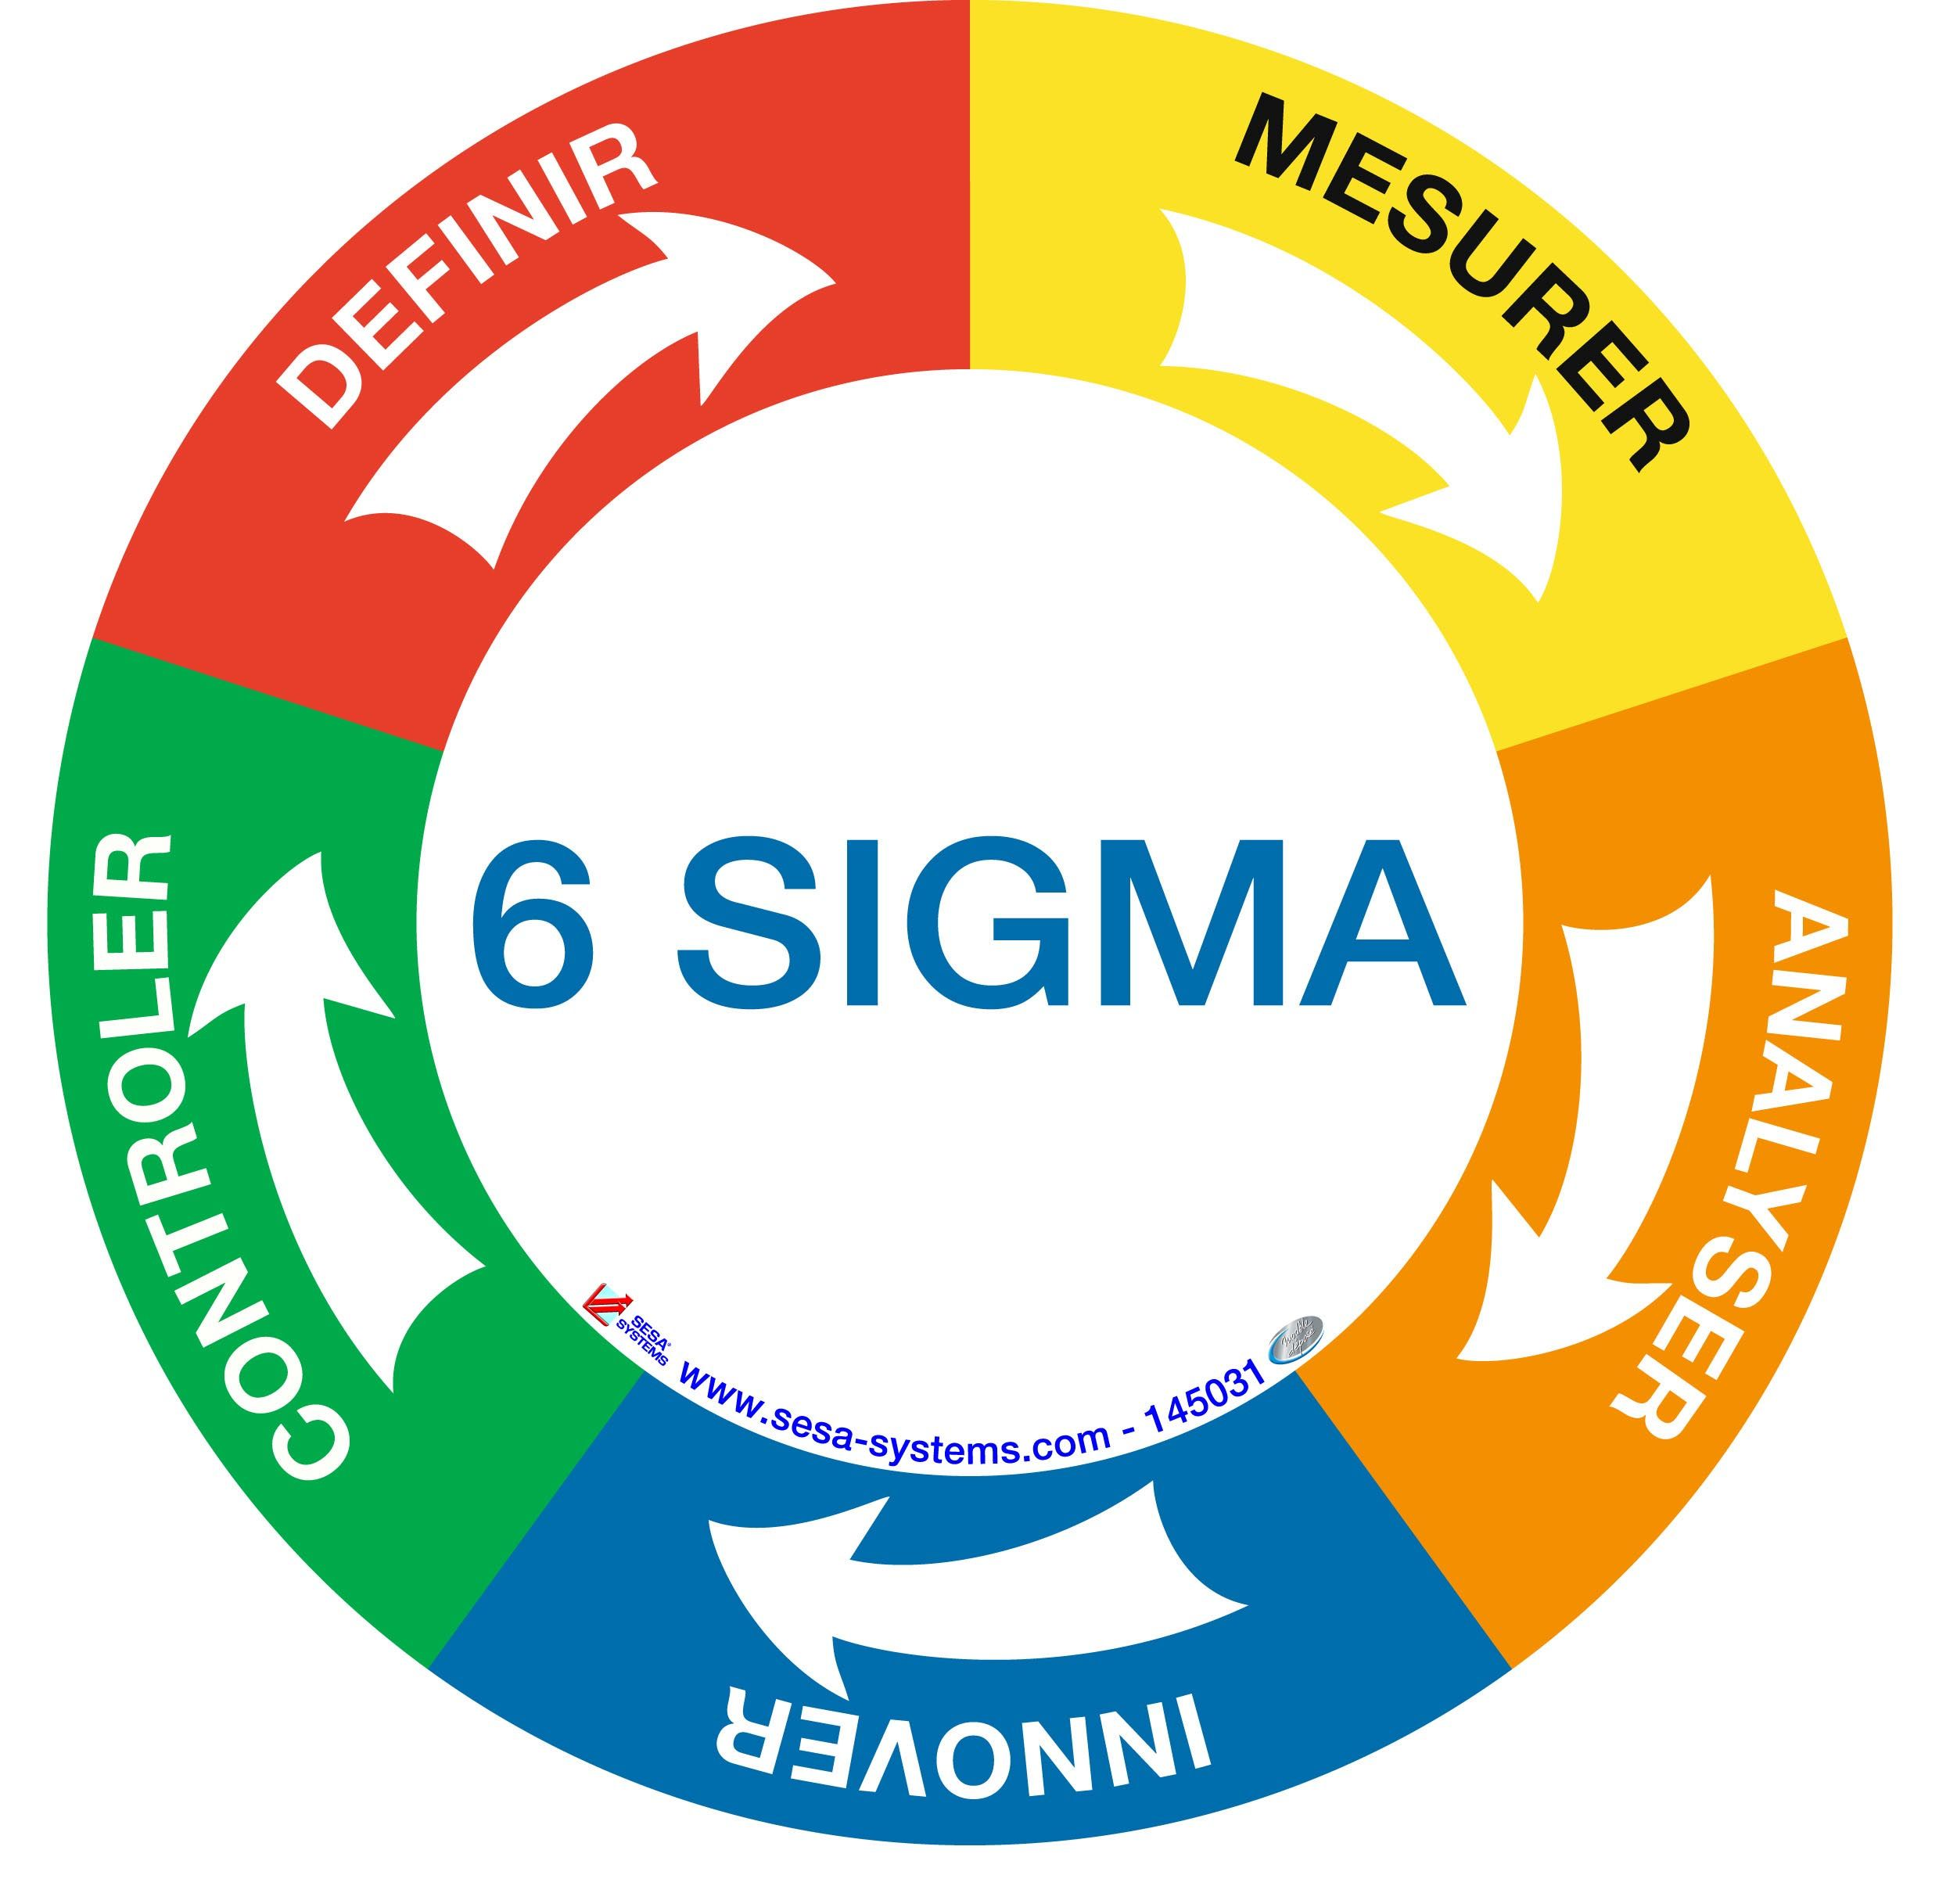 6 sigma certification six sigma certification pinterest 6 sigma certification xflitez Choice Image